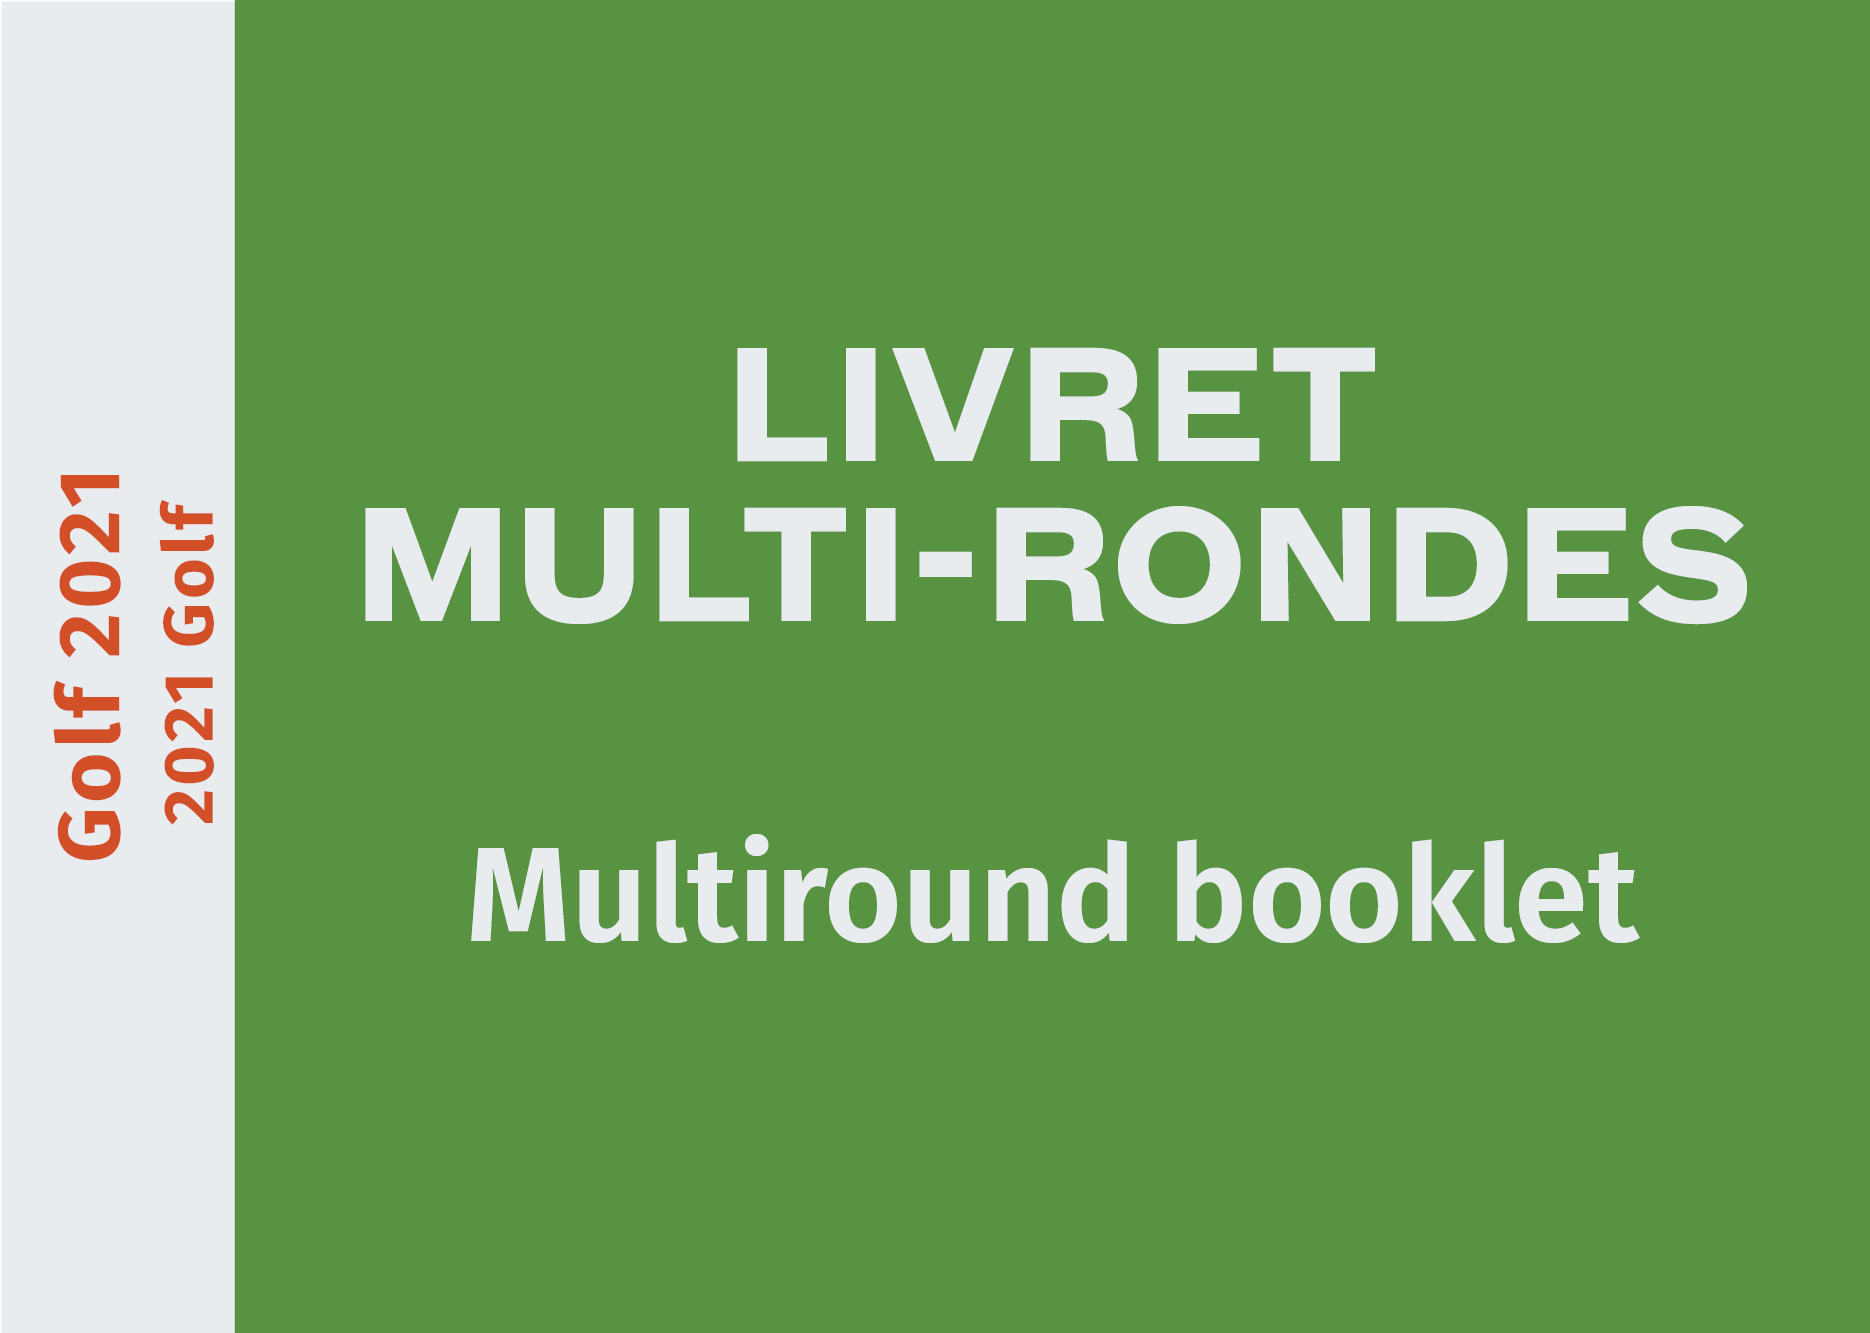 Multi-Round booklet